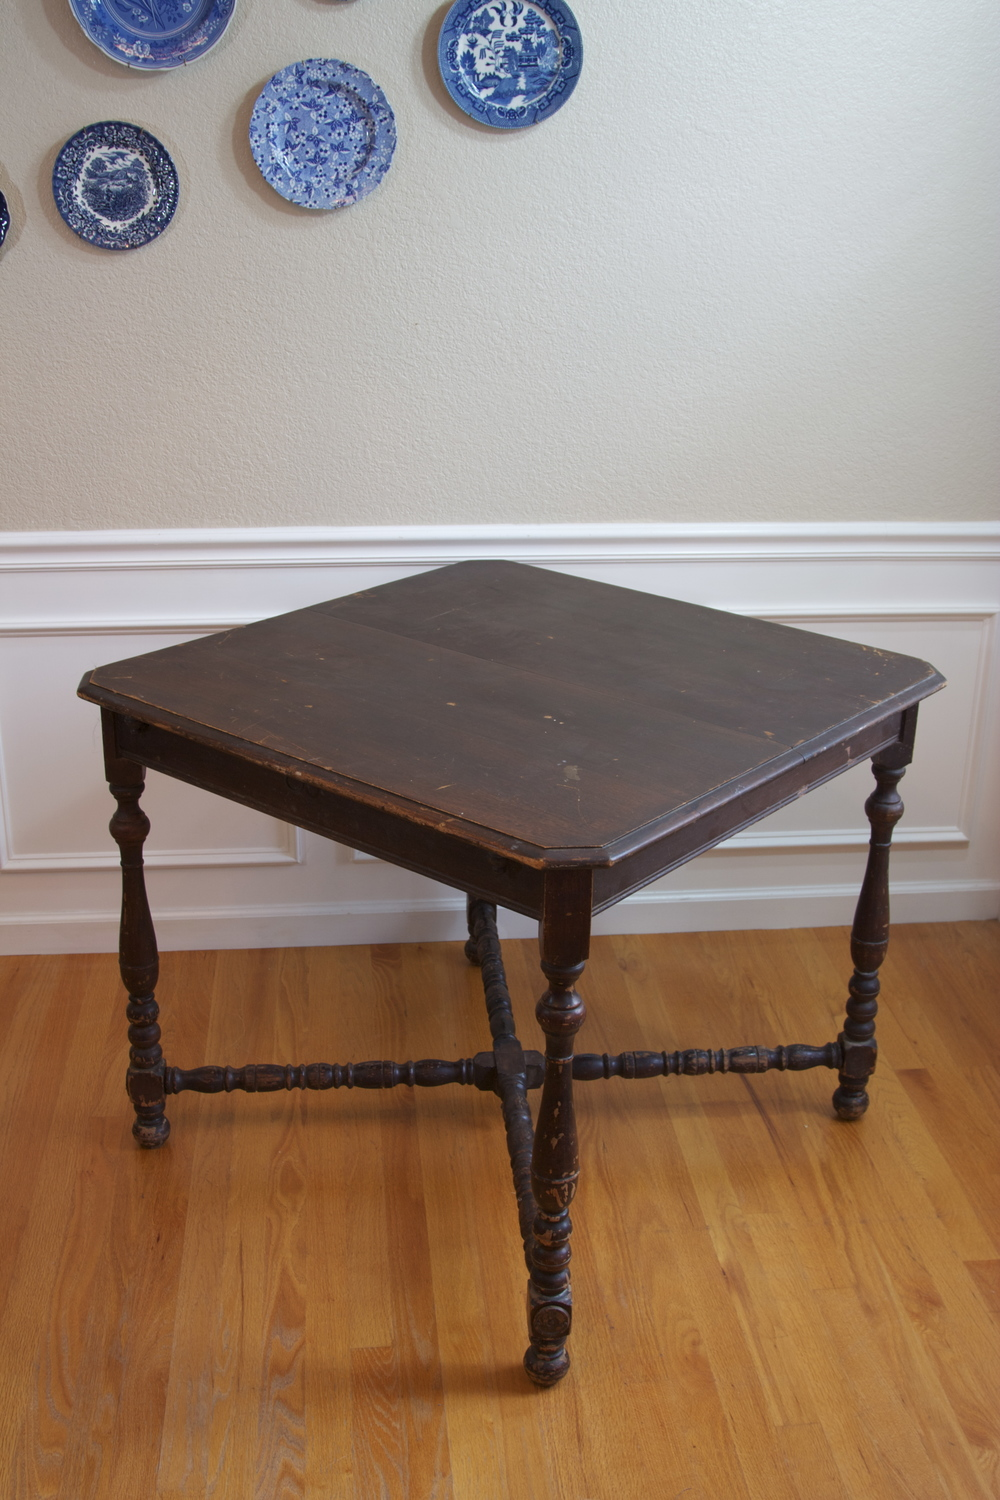 MILDRED TABLE